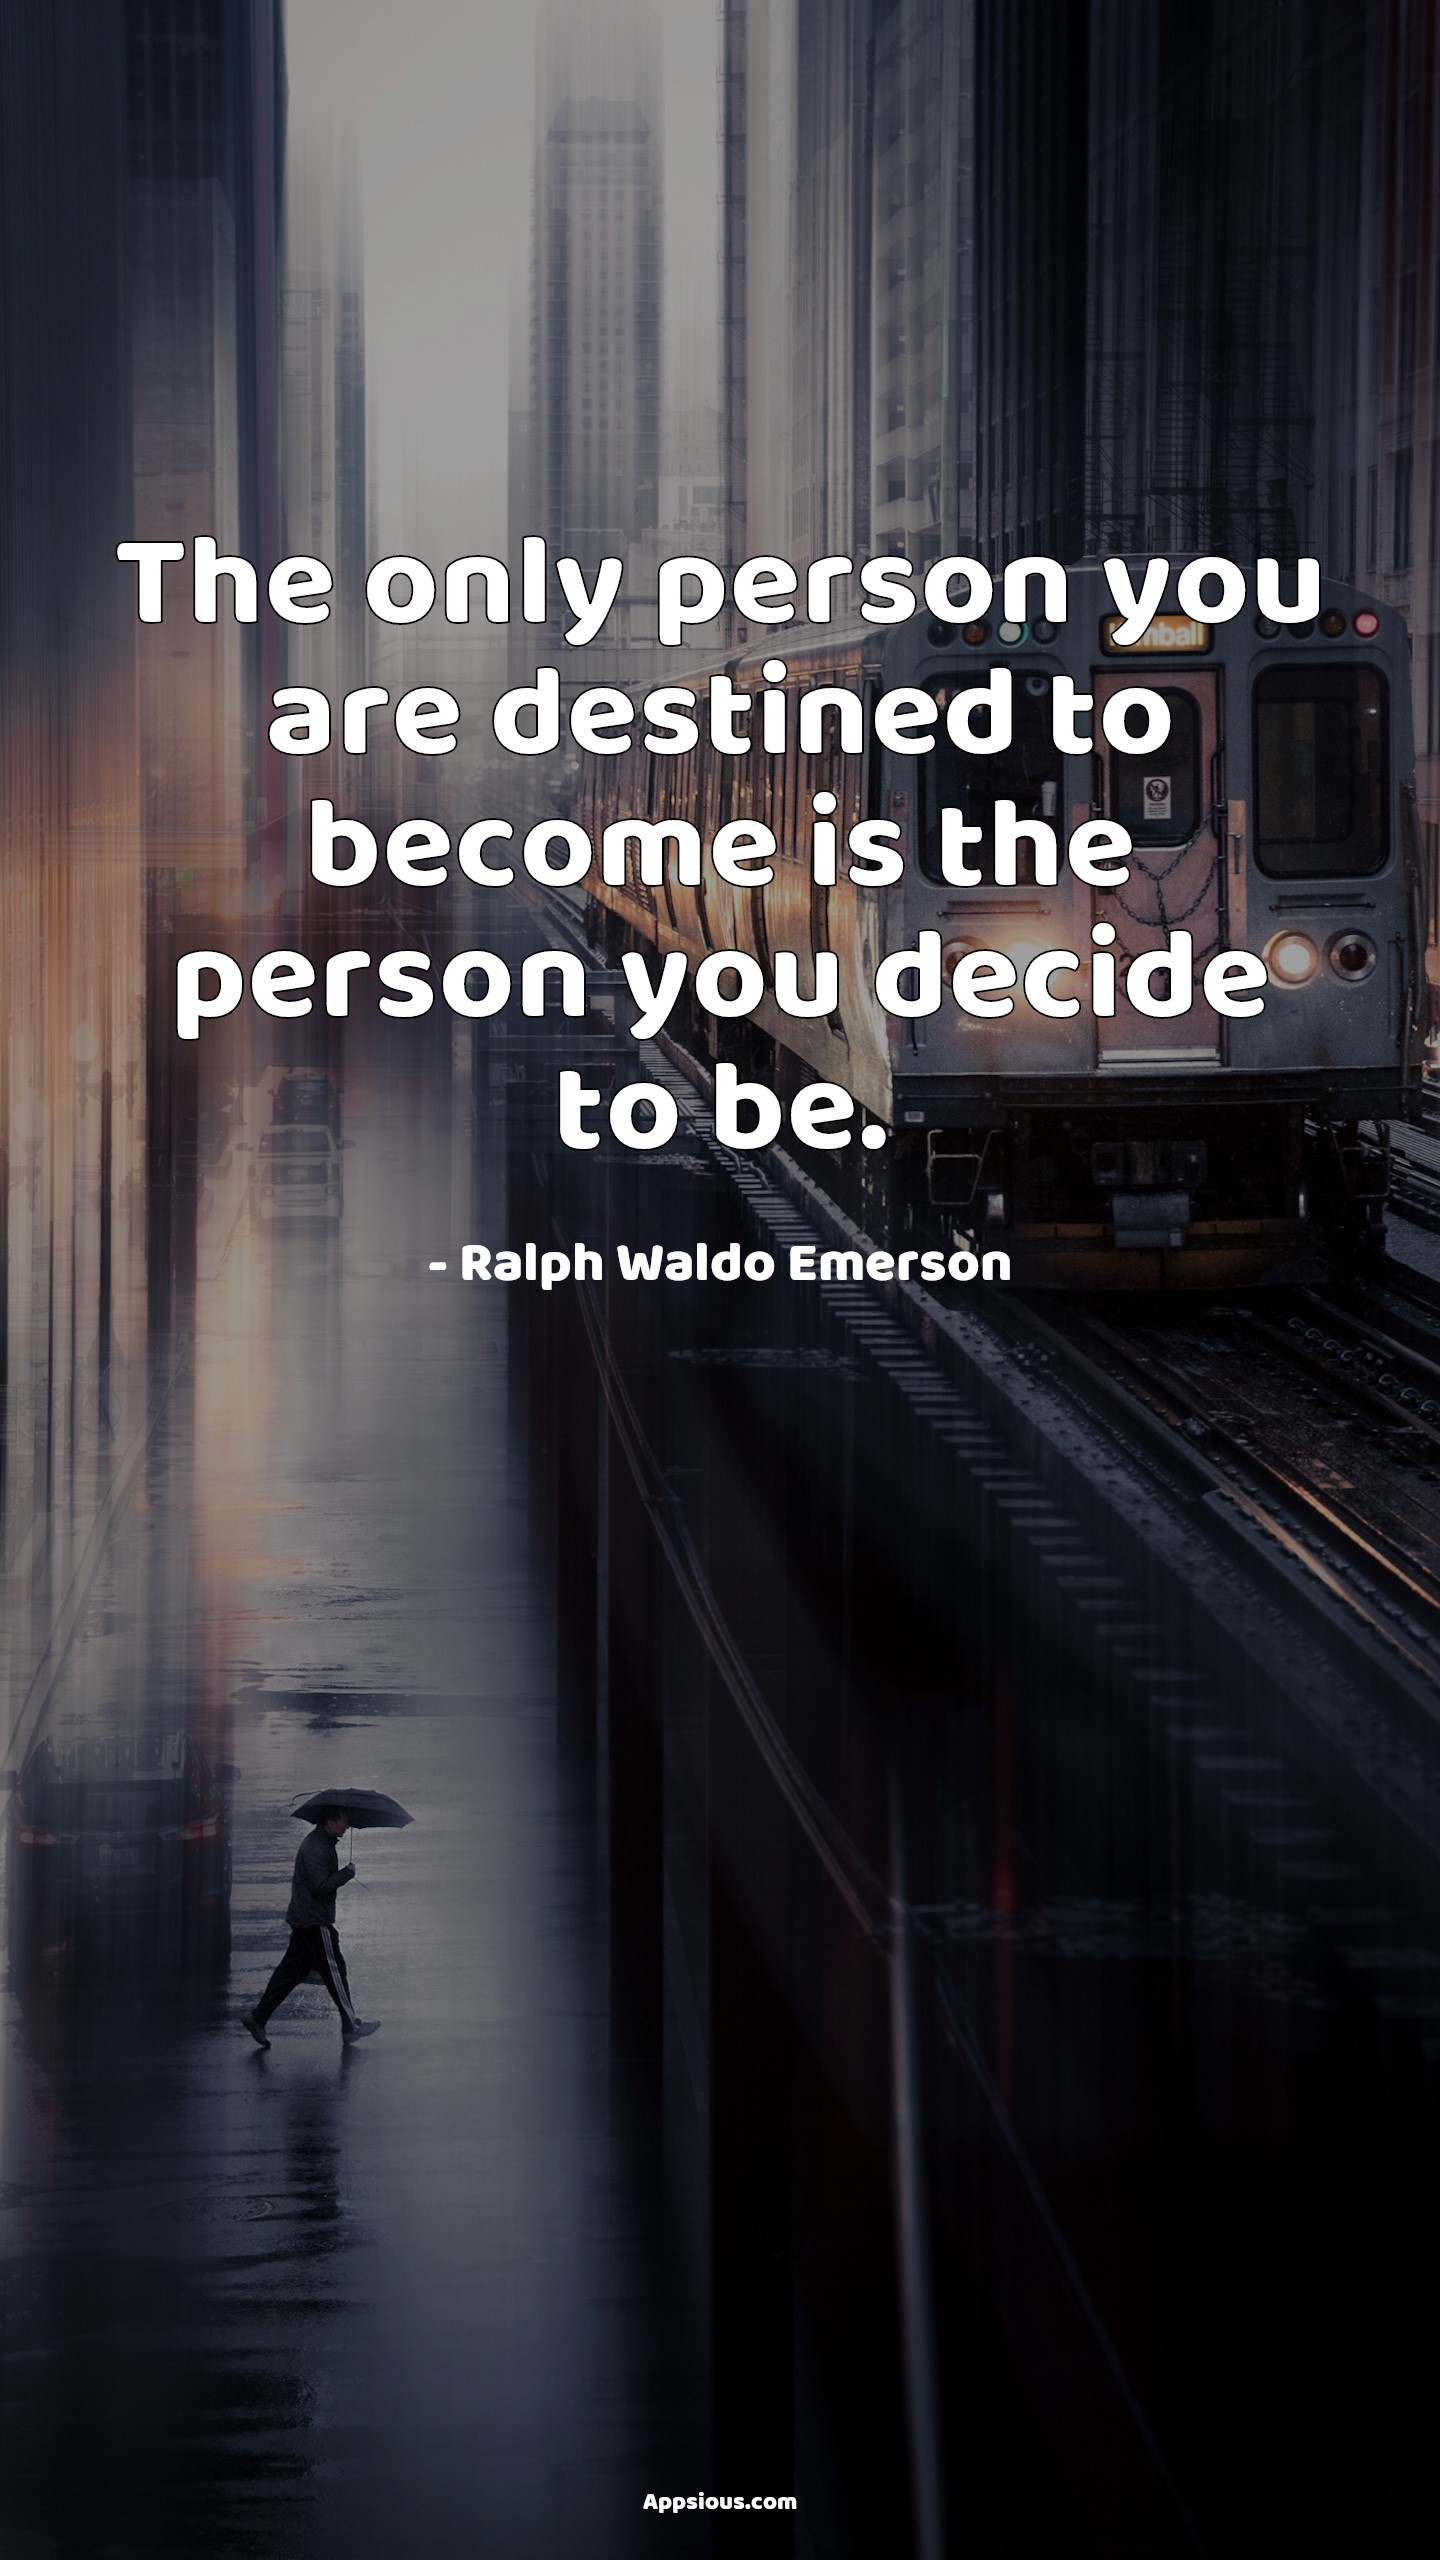 The only person you are destined to become is the person you decide to be.